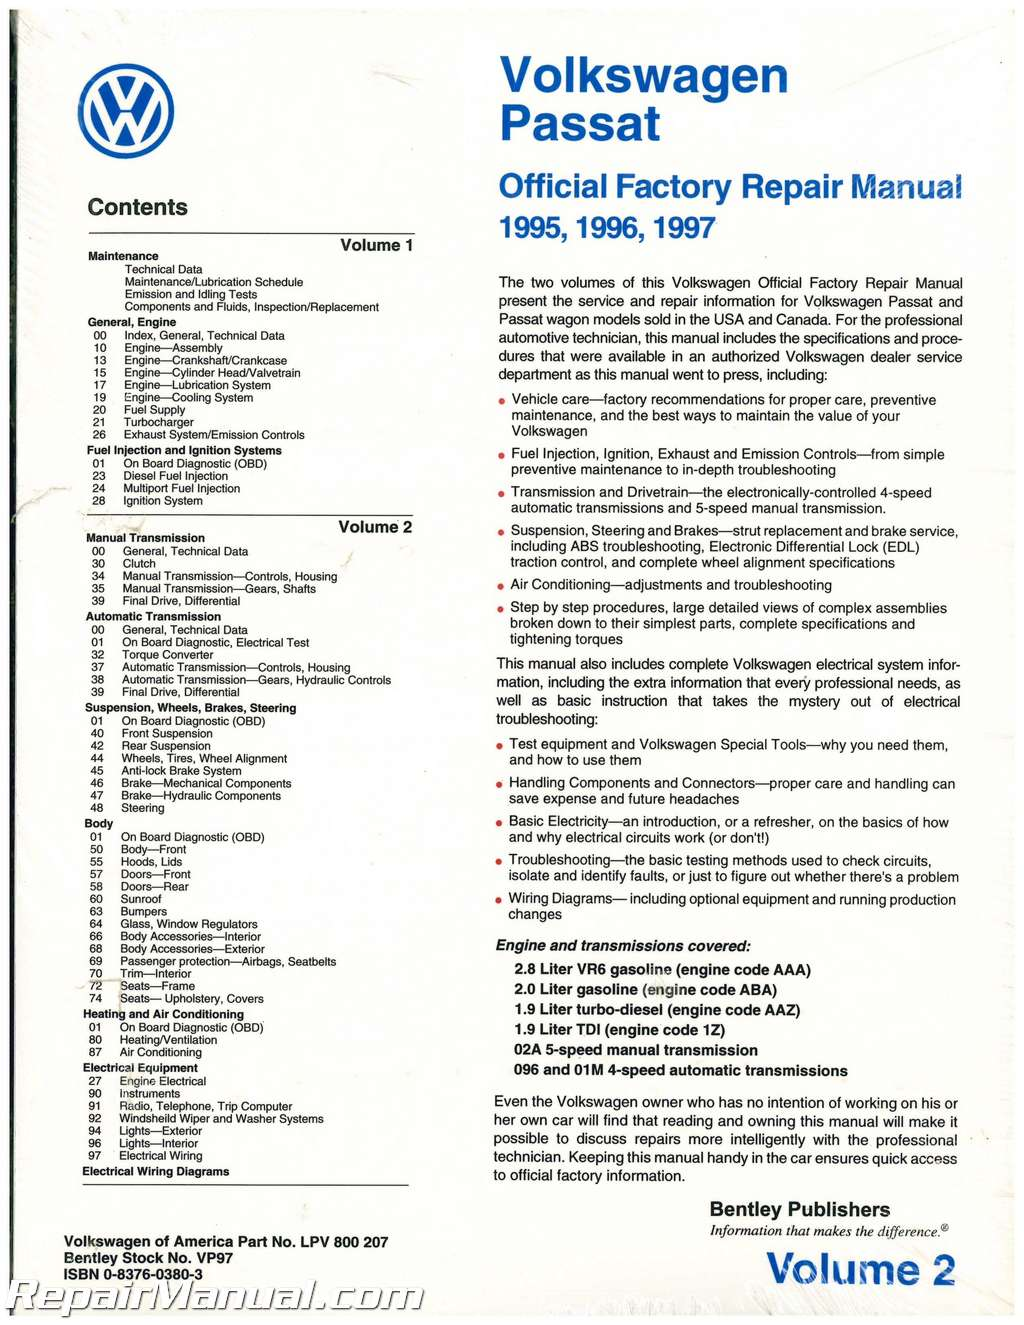 Volkswagen Passat (B4) Repair Manual 1995 1996 1997 Gasoline Turbo Diesel  TDI 4-cylinder VR6 Wagon